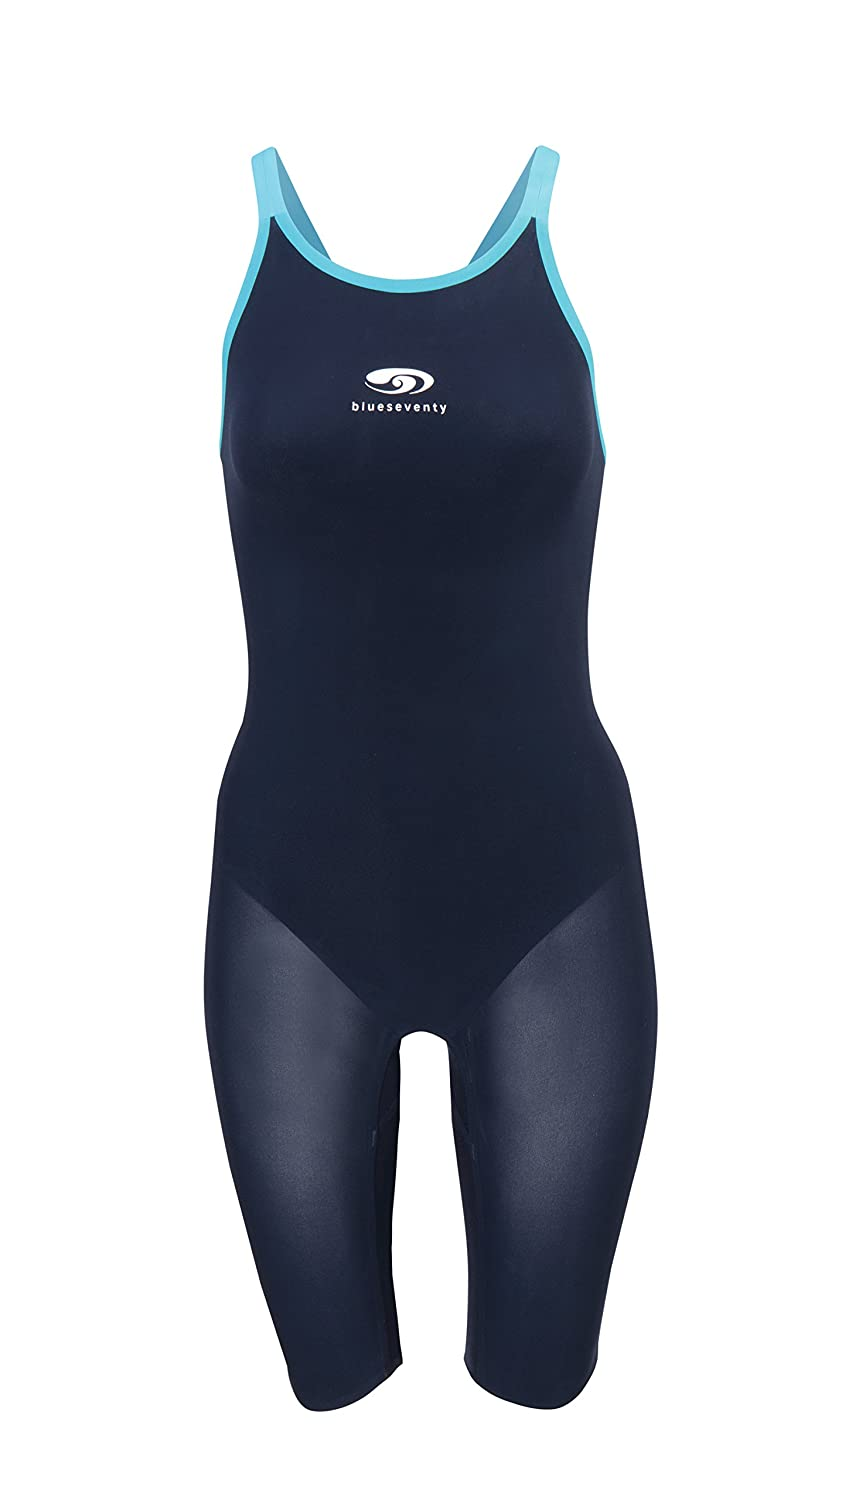 5f78c92f7e3 blueseventy neroFIT Kneeskin Girls and Women's Competition Tech Suit - FINA  Approved: Amazon.ca: Clothing & Accessories